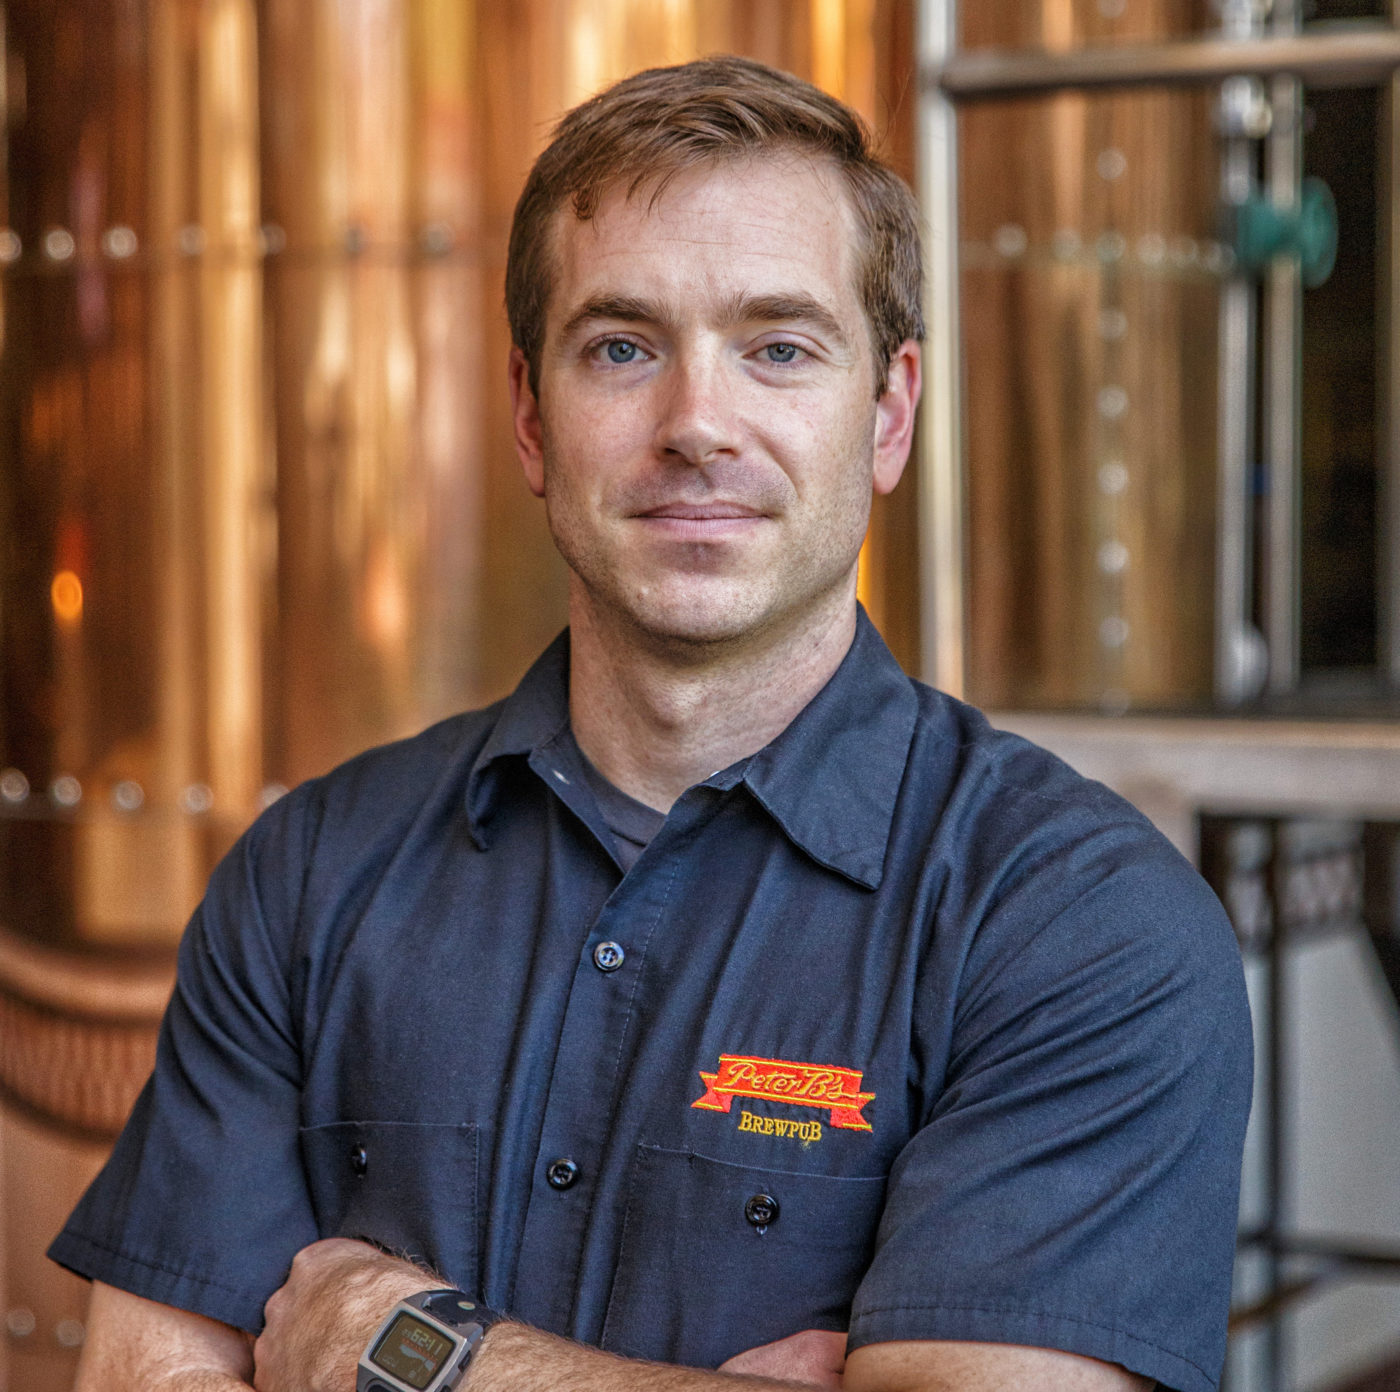 From Brewer to Software Engineer